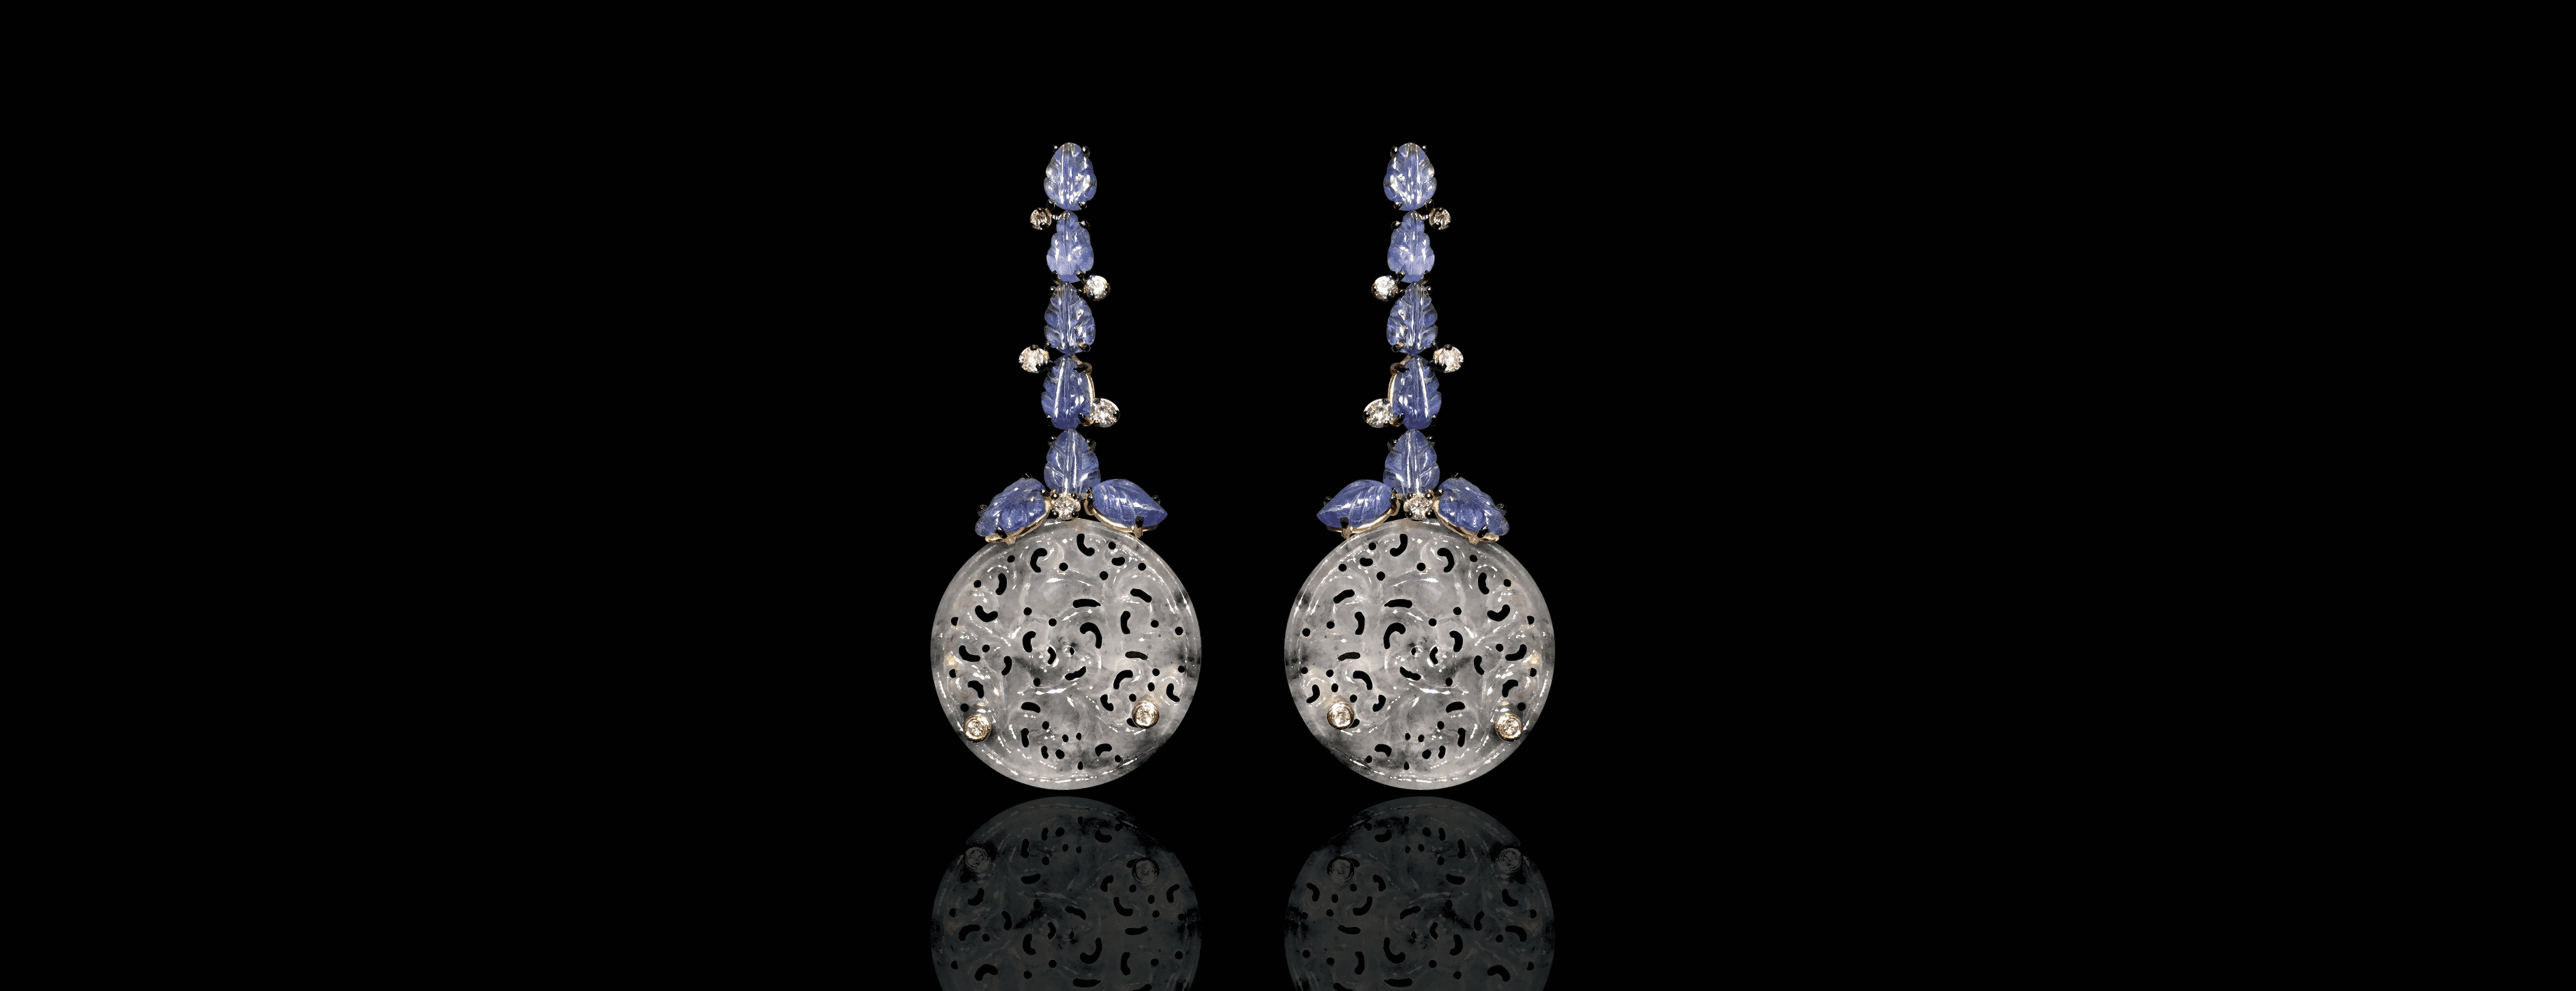 Verney gold Manon earrings decorated with diamonds, carved jade discs and sapphire leaves